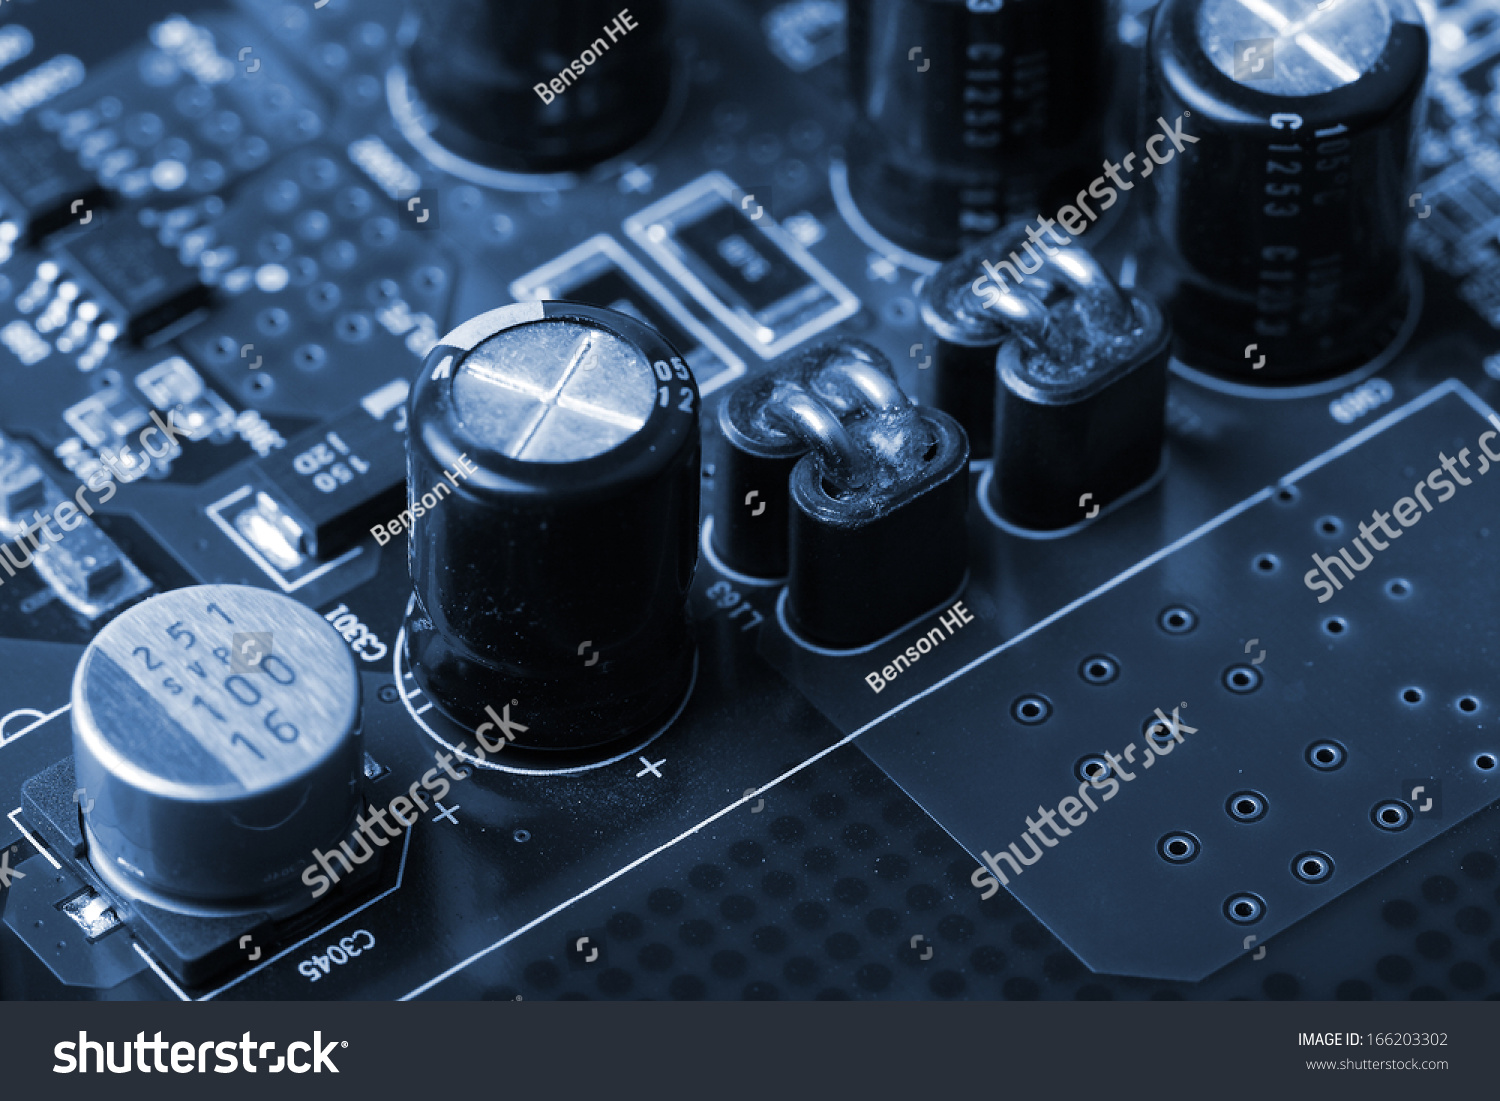 Royalty Free Application Specific Integrated Circuit 166203302 Electronic Chip Stock Image Inductors Capacitorselectrolytic Capacitors And Resistors Mounted On A Printed Wiring Board